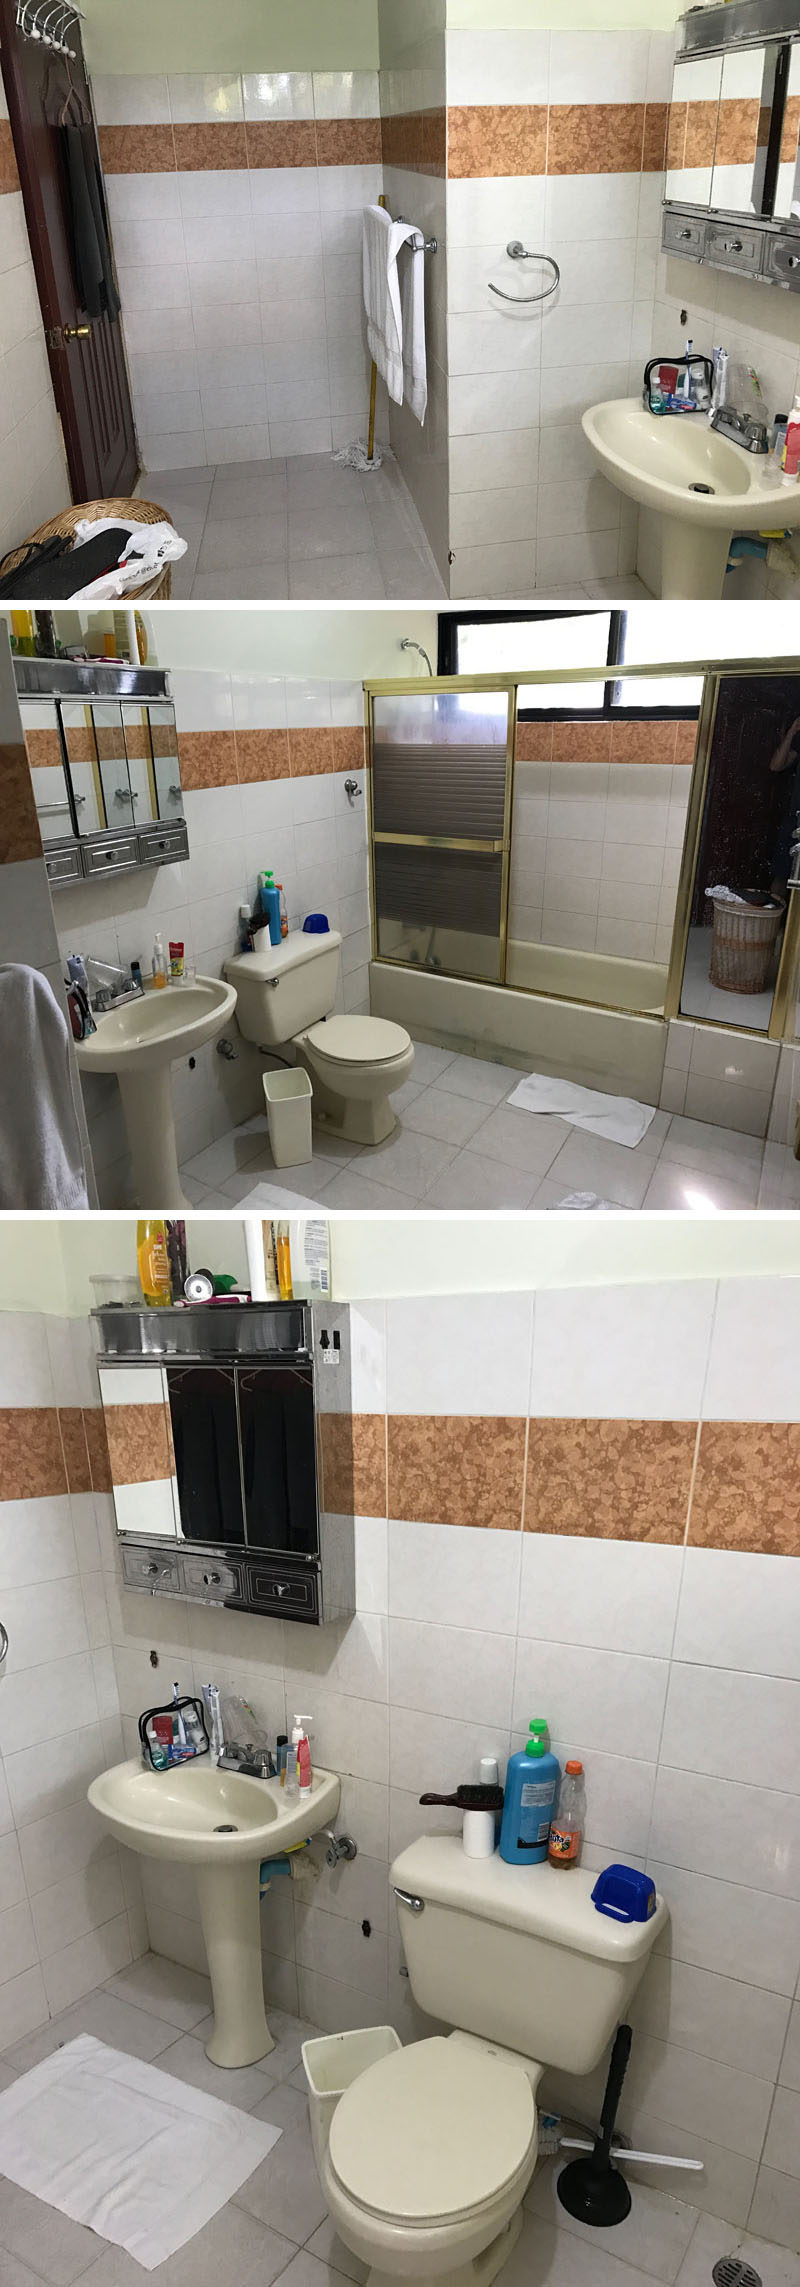 BEFORE PHOTOS - This 1990's bathroom was dated with white tiles, an band of brown-orange tiles, a pedestal sink, and a shower/bath combination with a metal shower door frame. #BeforePhotos #Renovation #Bathroom